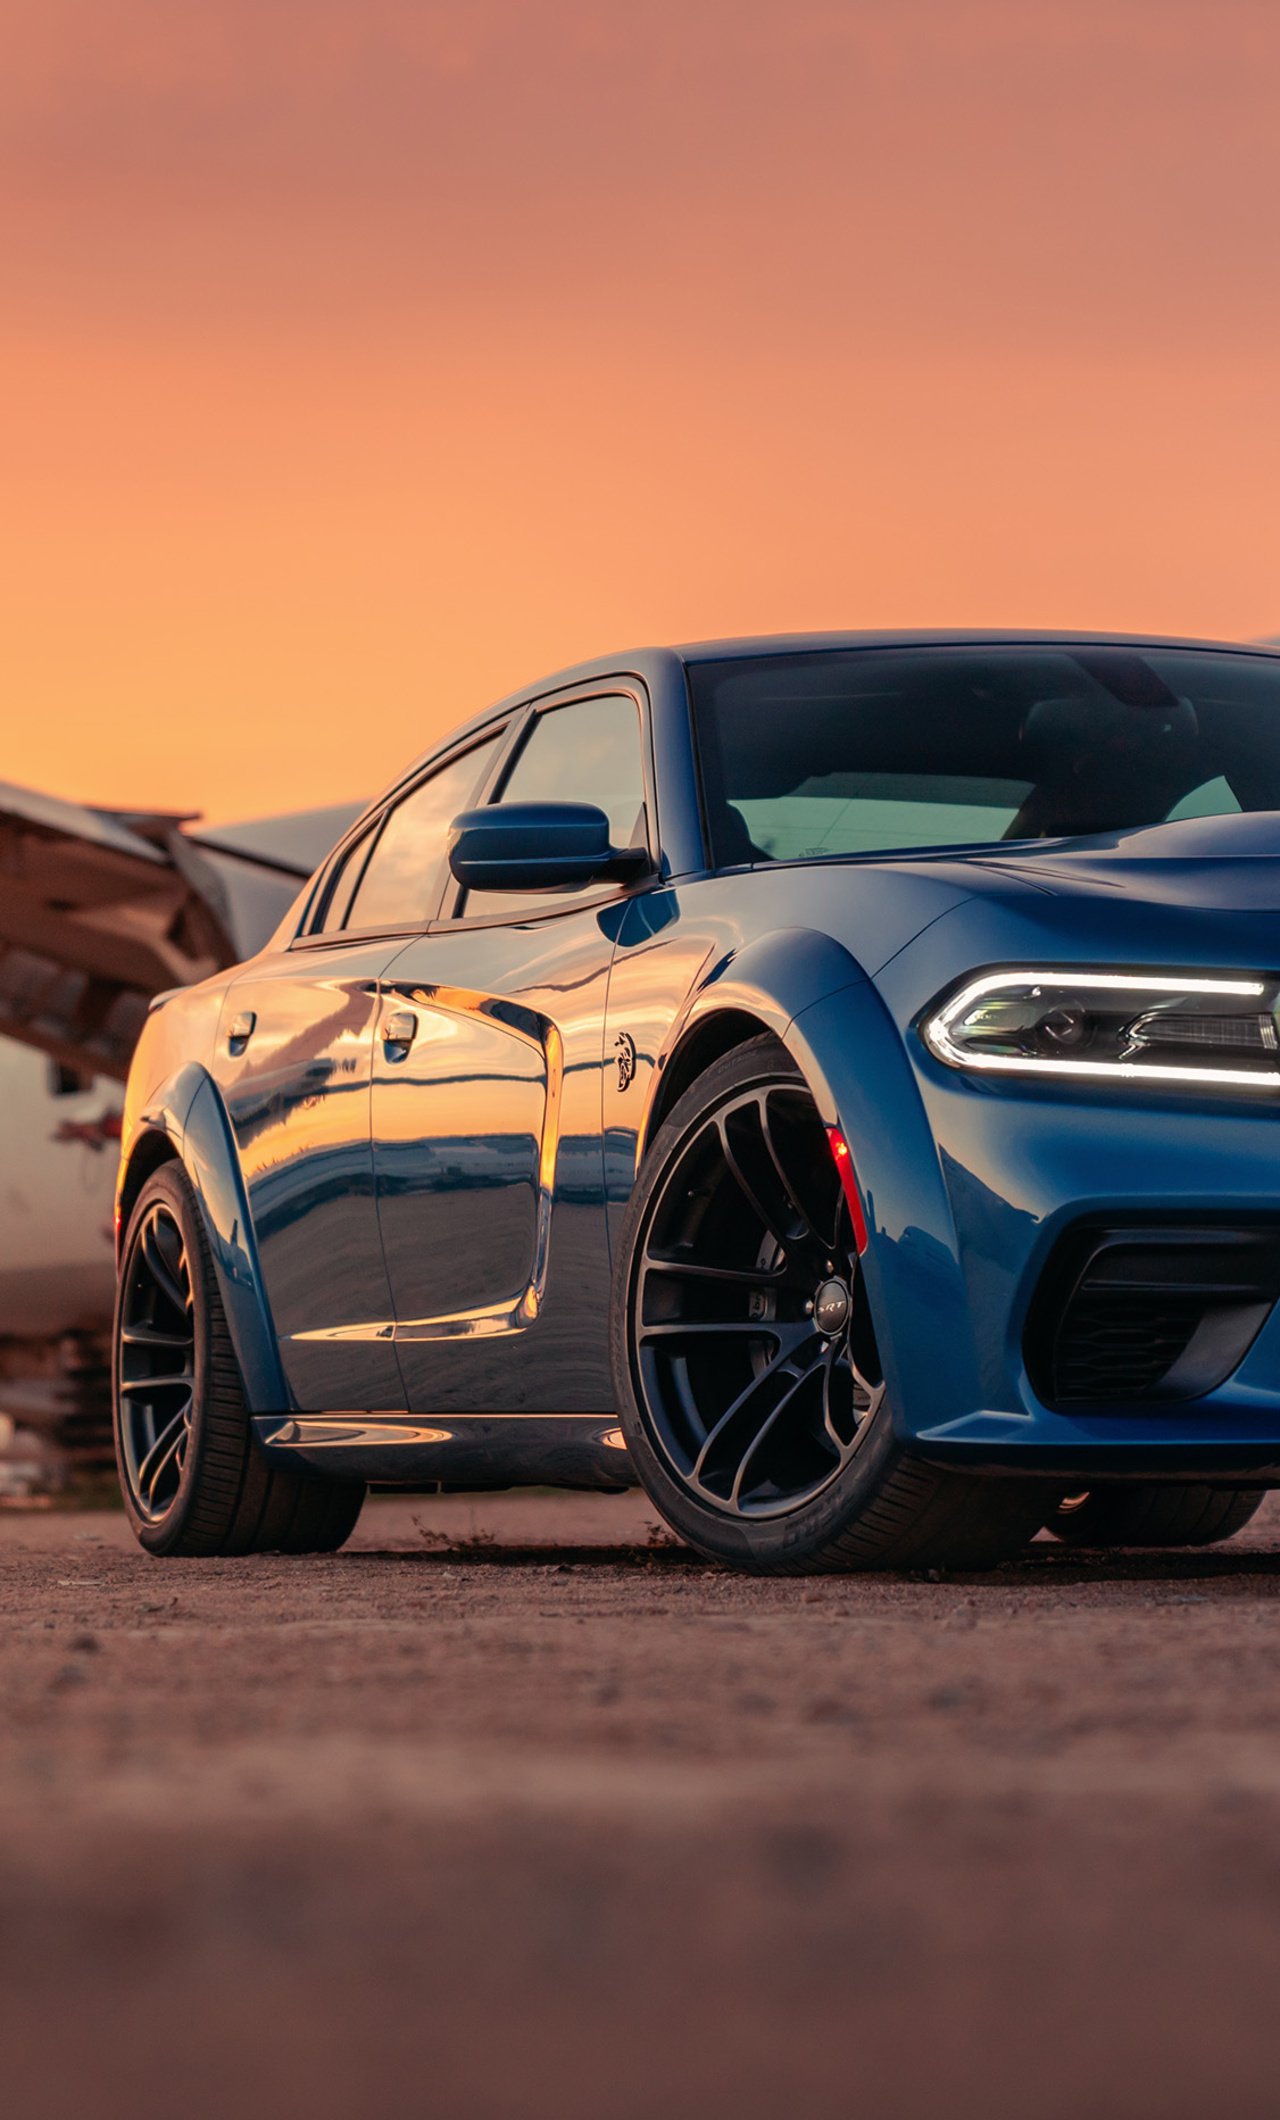 1280x2120 2020 Dodge Charger Srt Hellcat Widebody Front Iphone 6 Hd 4k Wallpapers Images Backgrounds Photos And Pictures